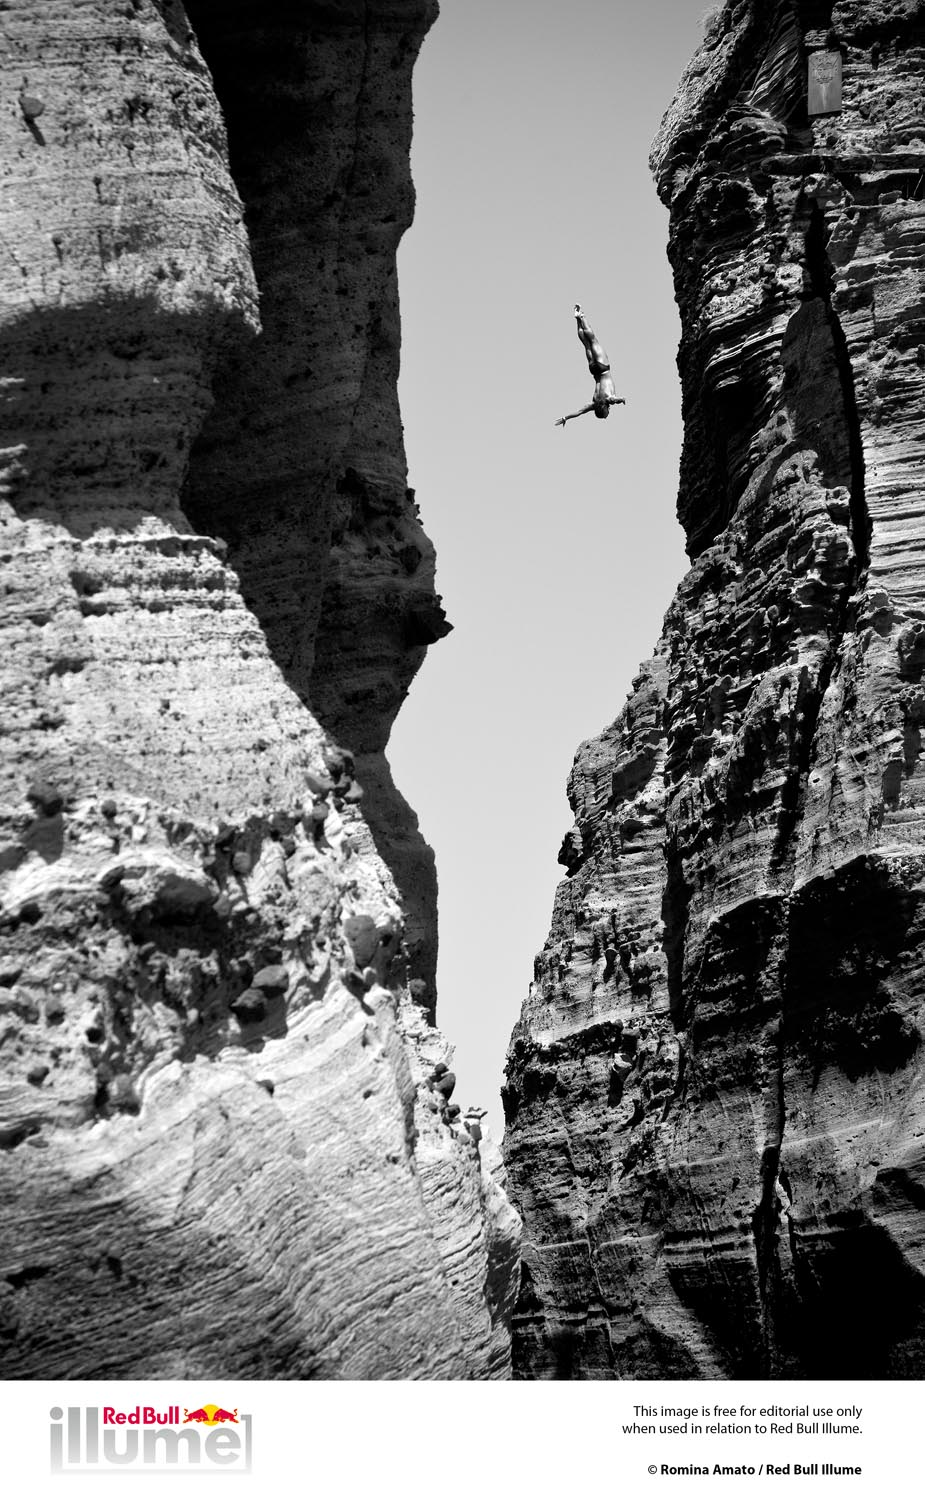 Todor Spasov of Bulgaria dives 29 metres from the rock monolith during the first training session of the third stop of the Red Bull Cliff Diving World Series, Islet Vila Franca do Campo, Azores, Portugal on July 19th 2012.